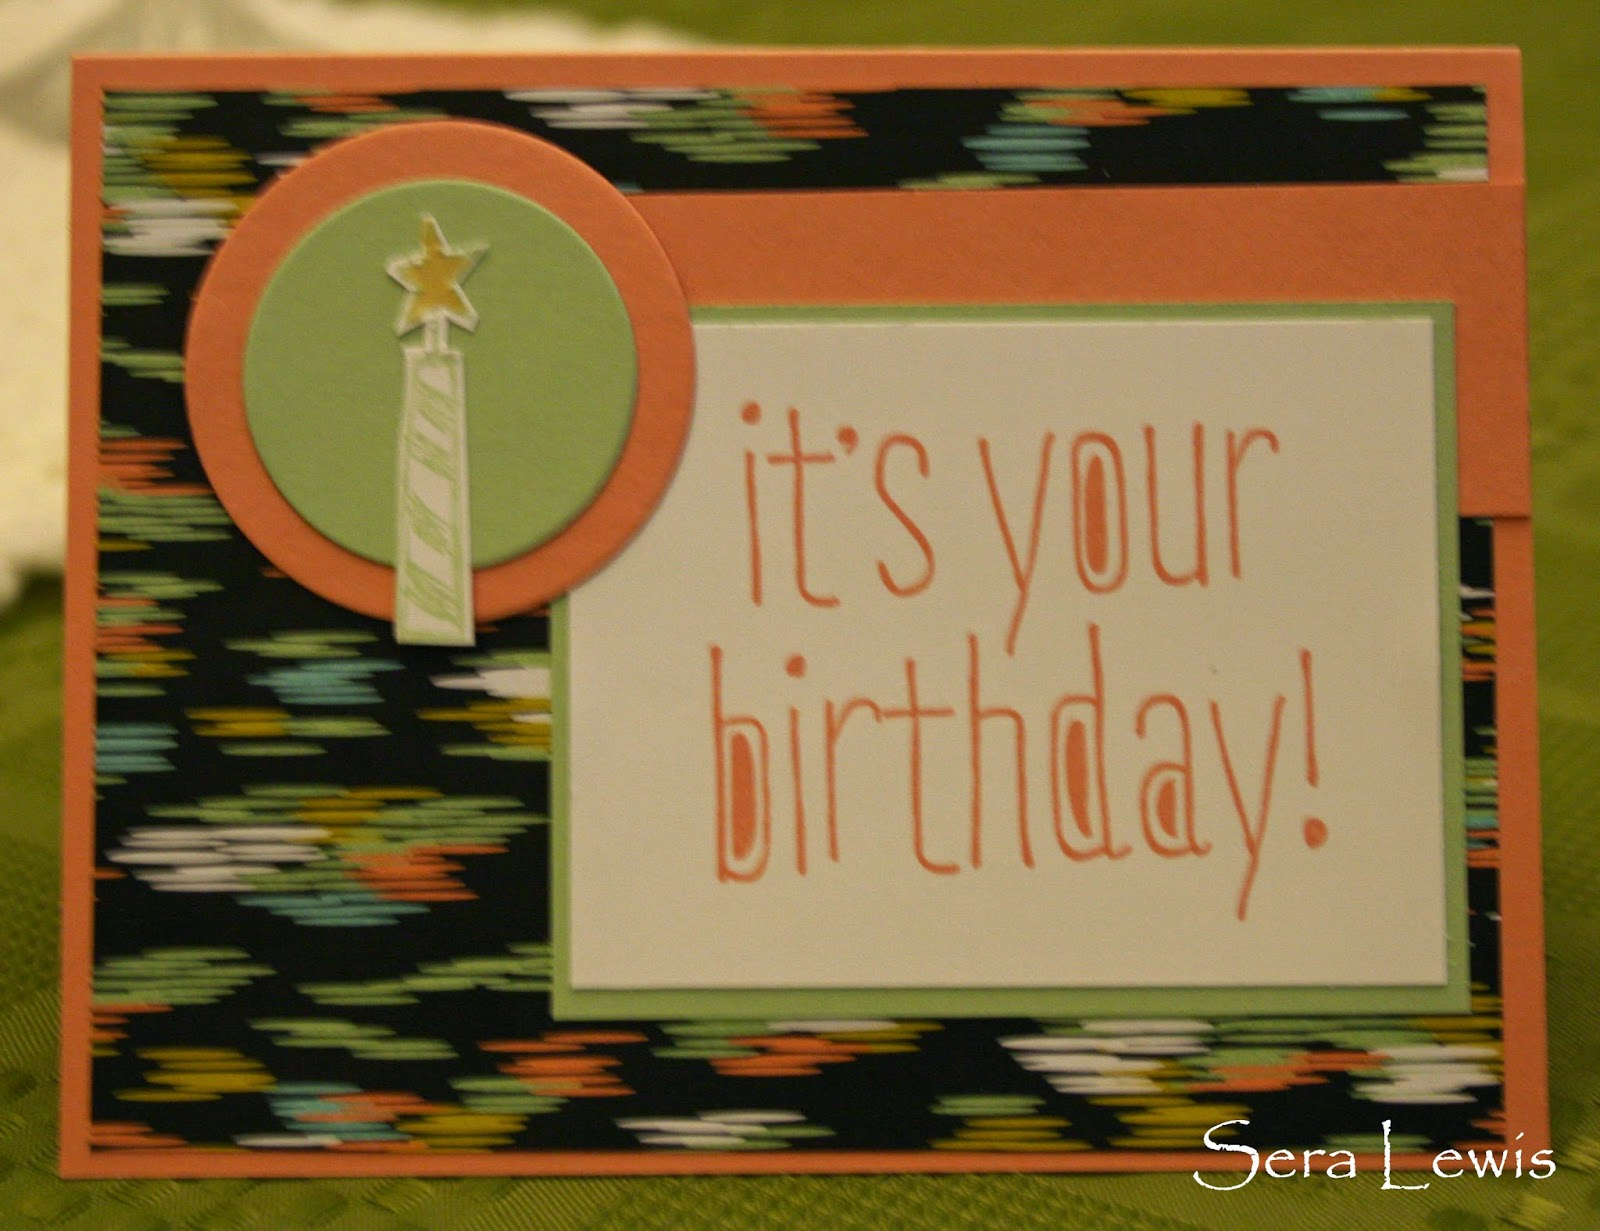 This birthday card would be good for anyone in the office!